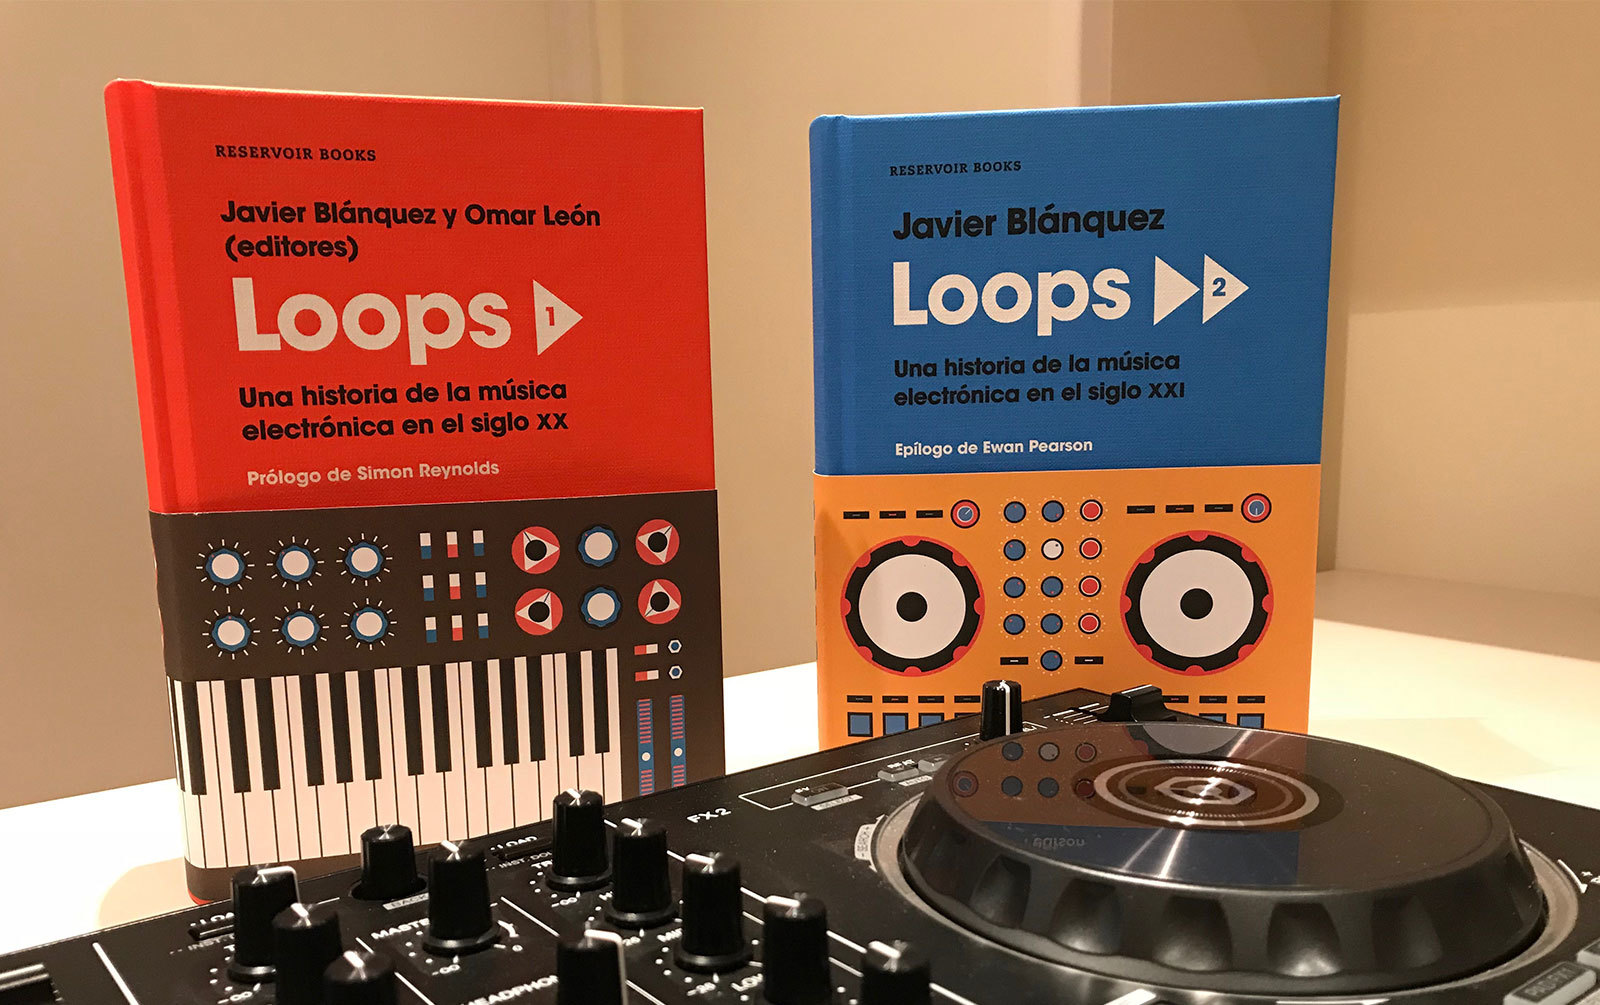 Join Loops to create the ultimate playlists of electronic music history - Sónar+D Barcelona 2018